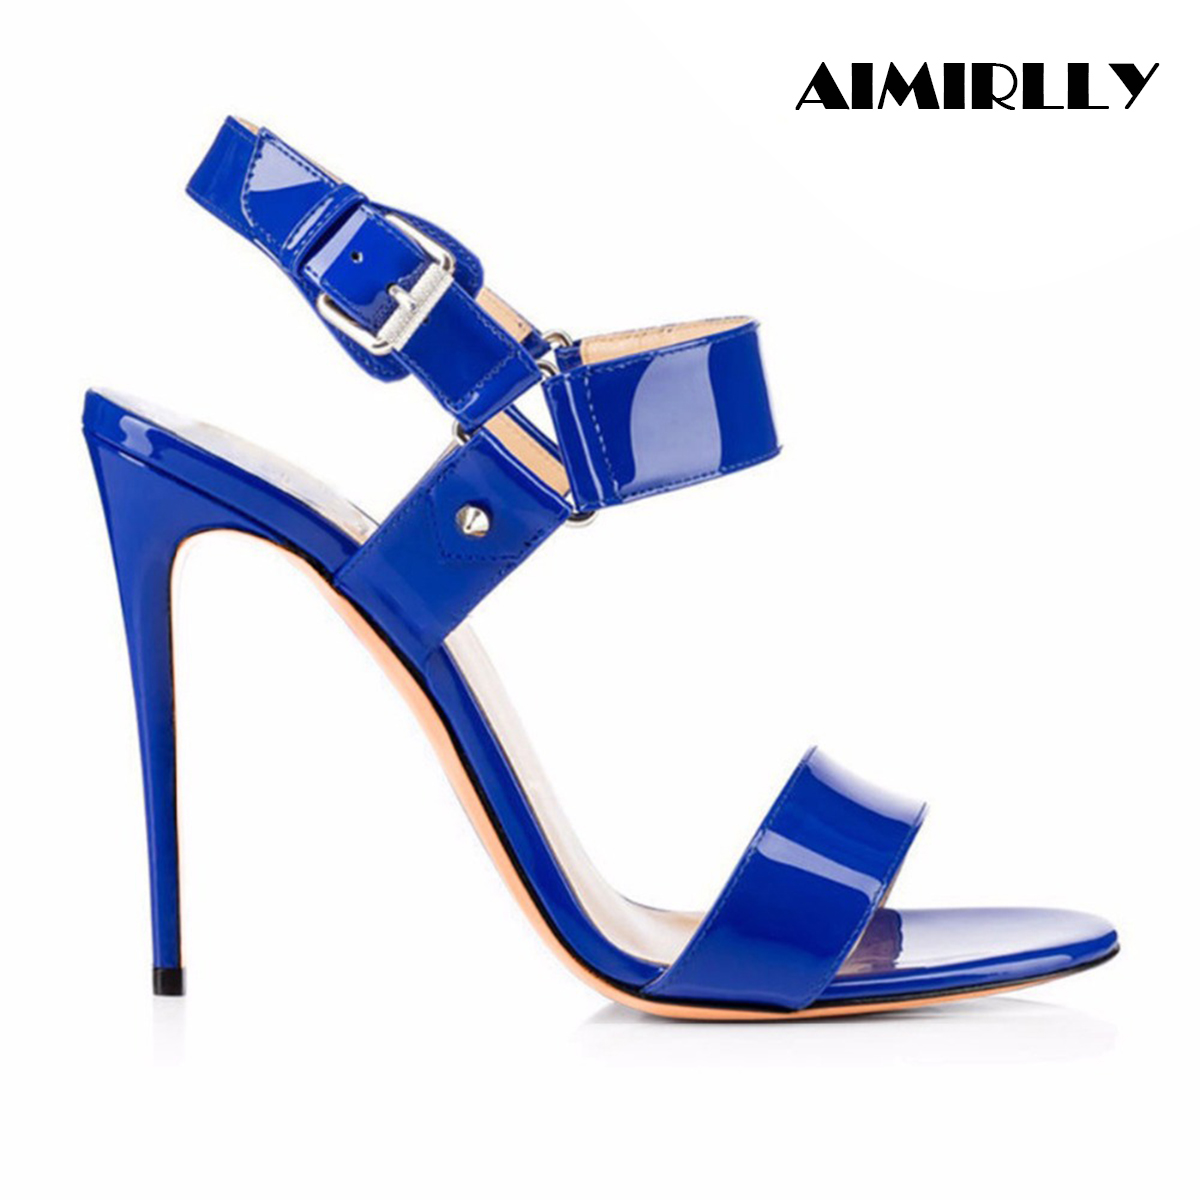 Aimirlly Women Shoes Open Toe High Heels Ankle Buckle Strap Sandals Slingback Ladies Party Dress Shoes